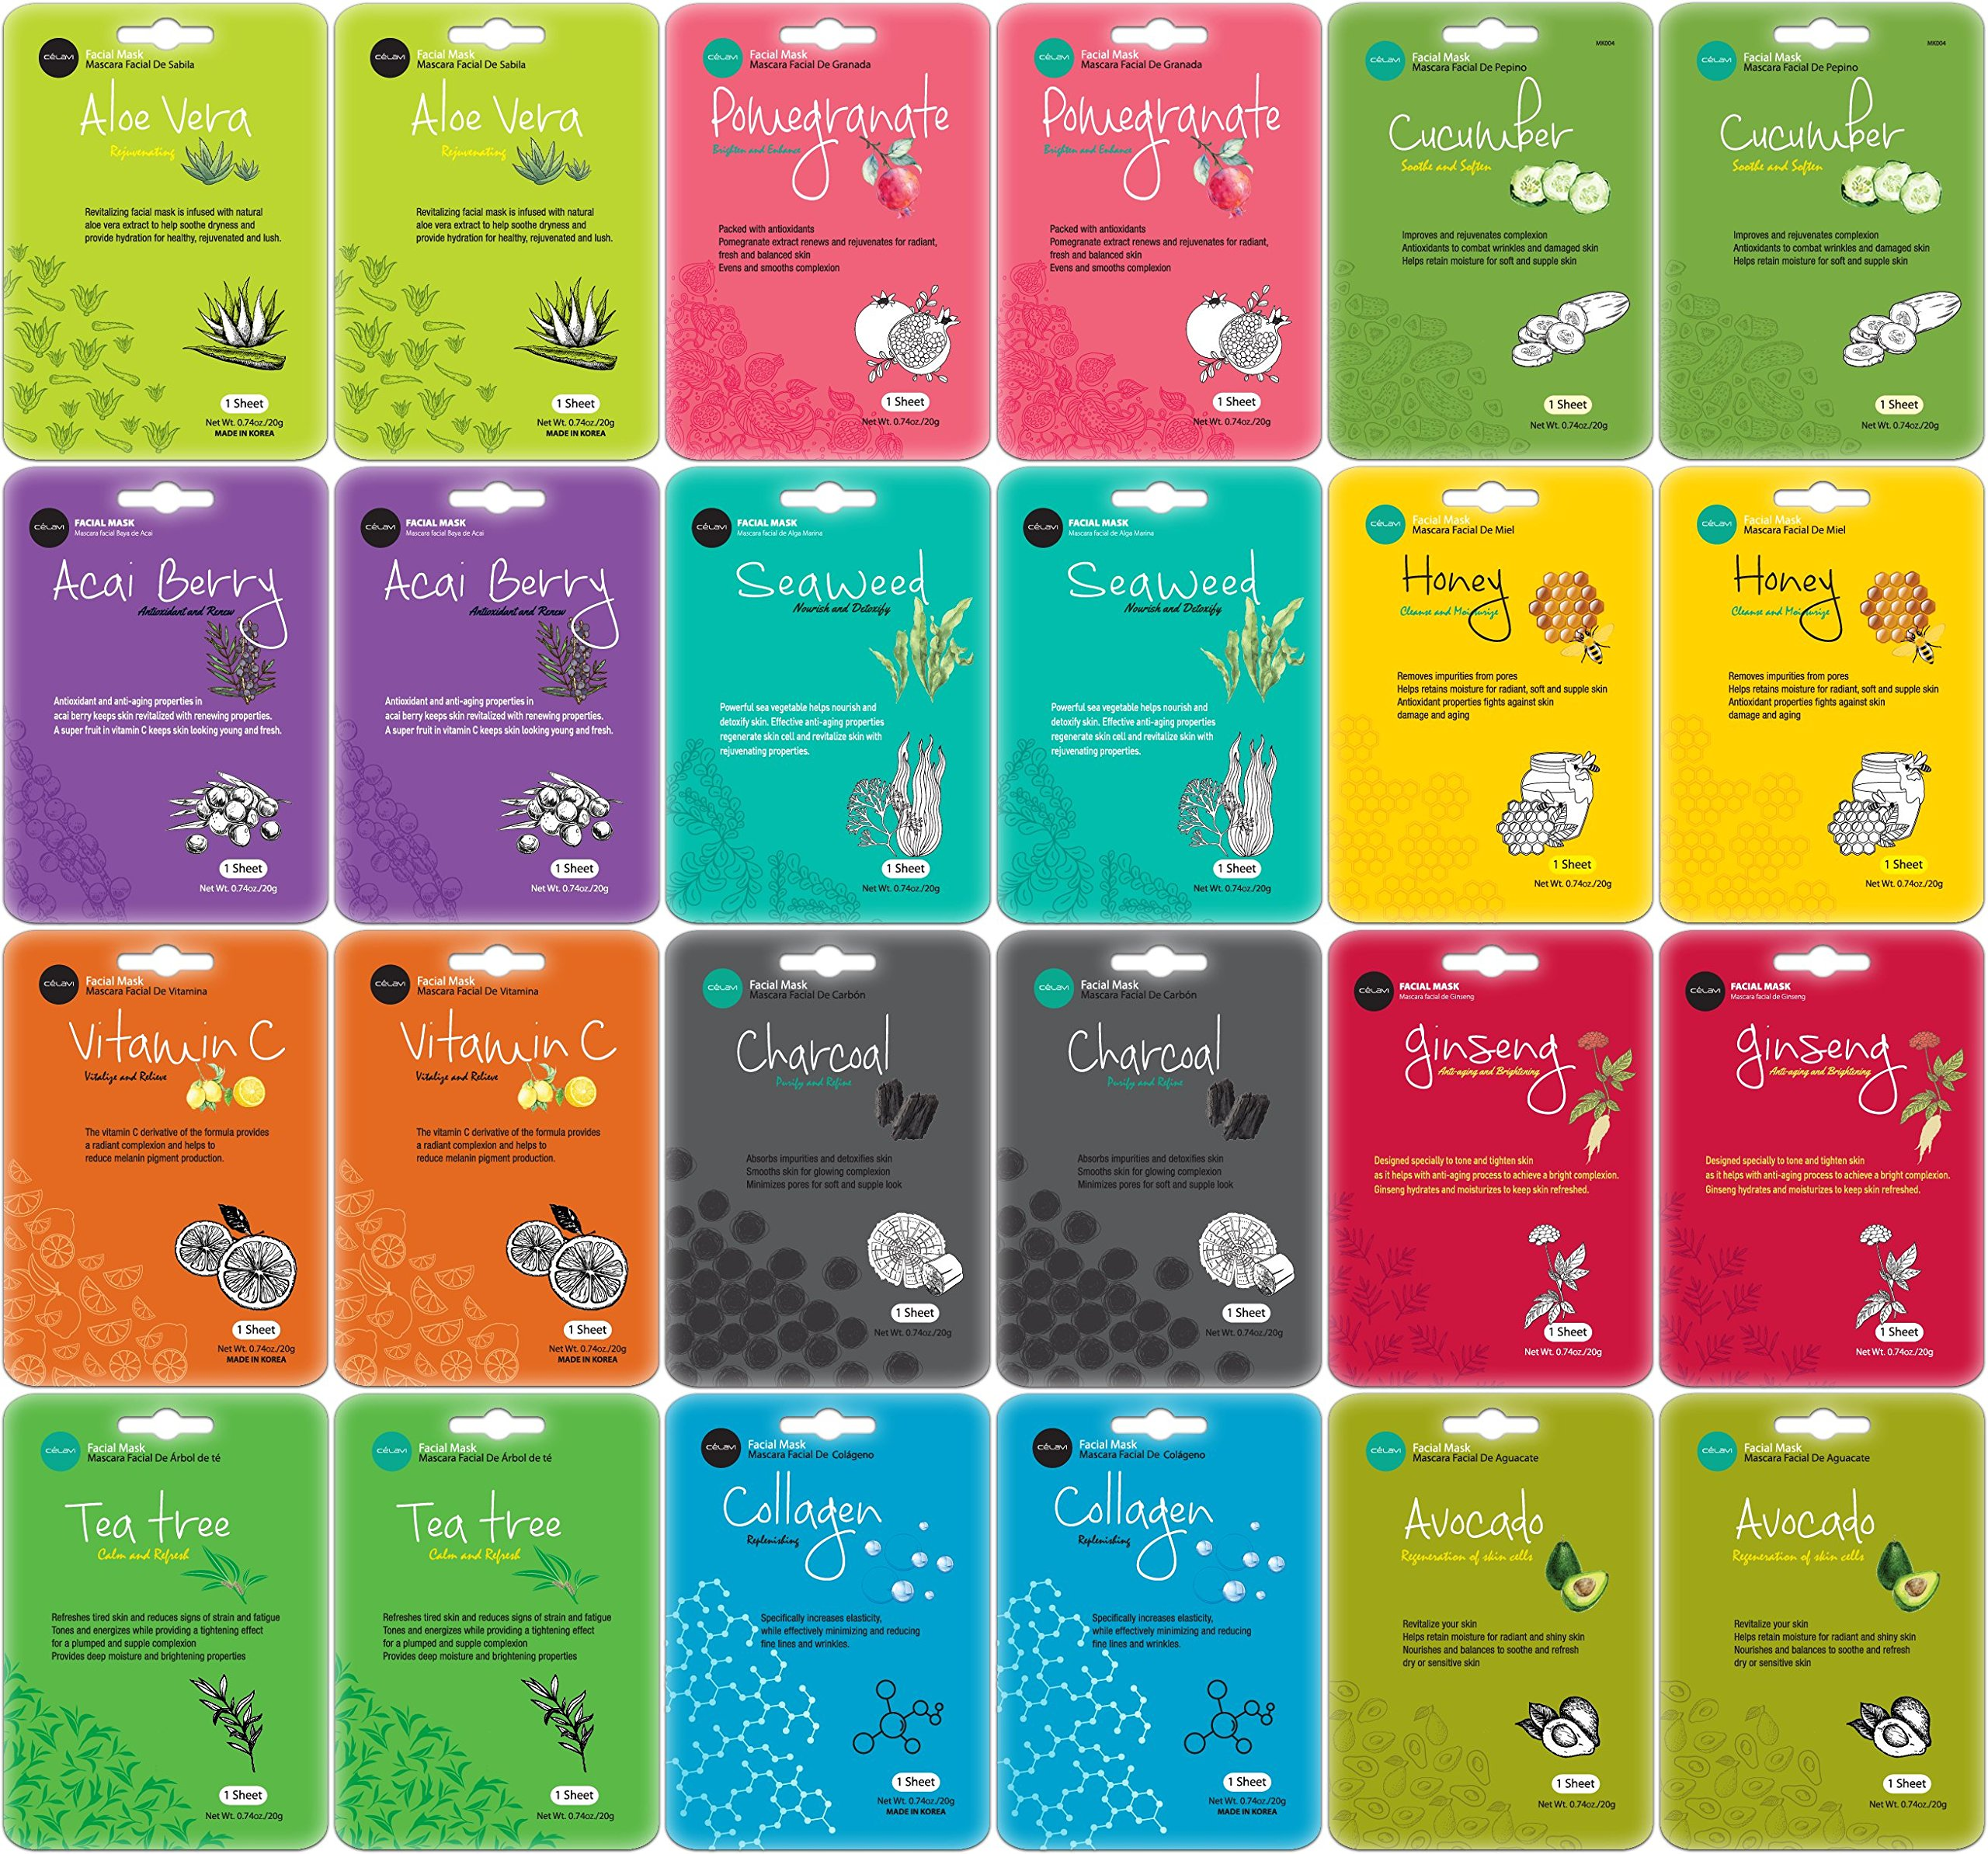 Celavi Collagen Facial Face Mask (24-Sheets) Classic Korean Skincare